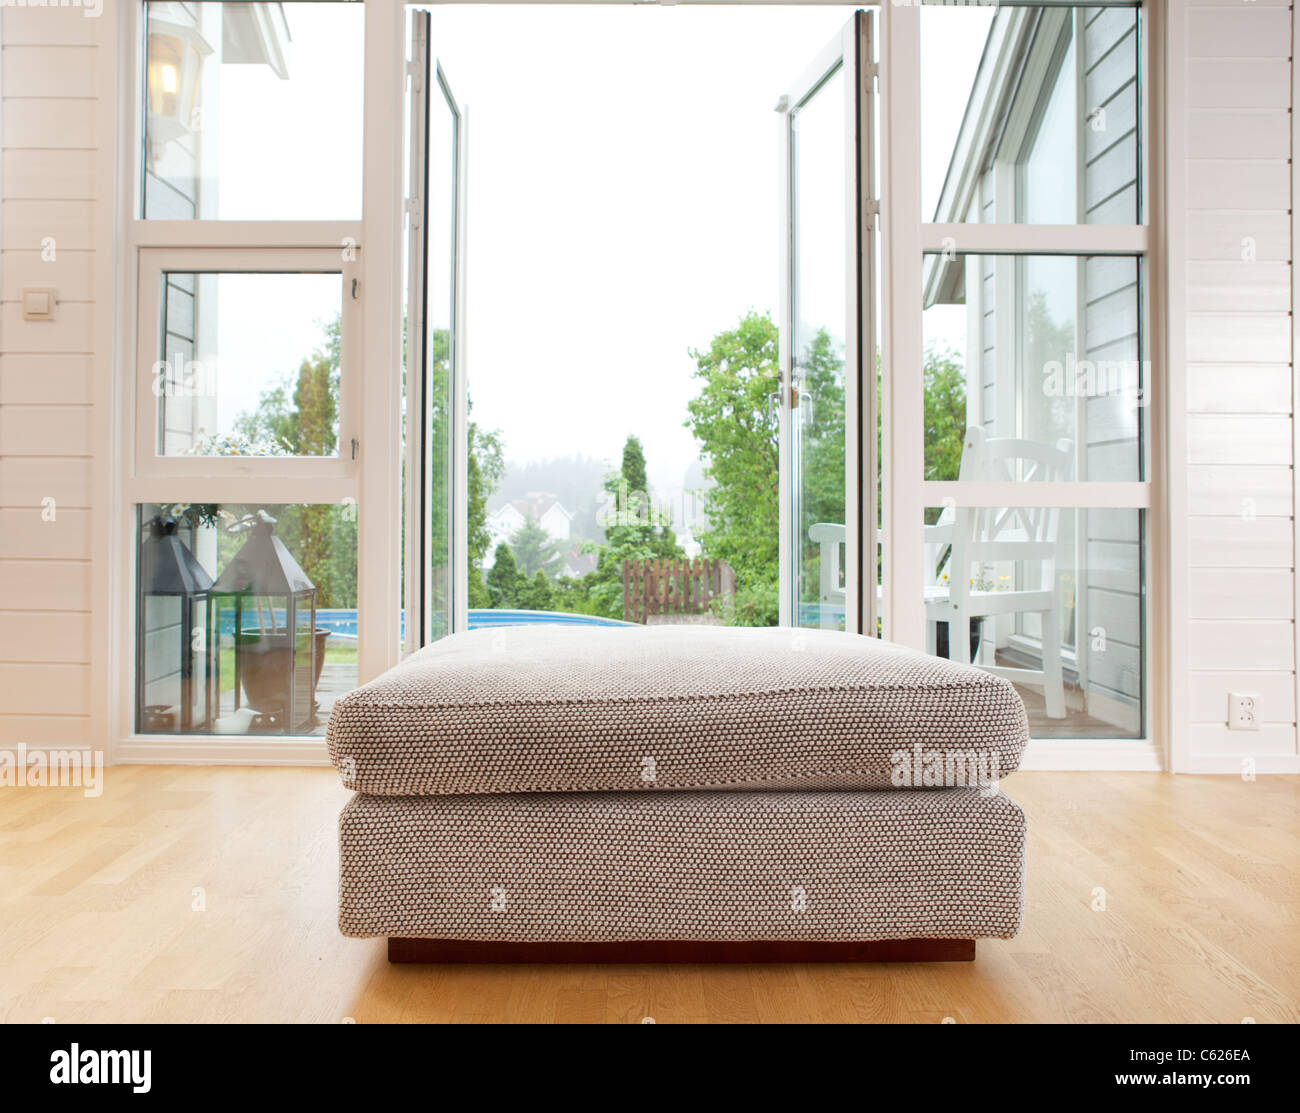 A large chair cushion in front of a large open window - Stock Image